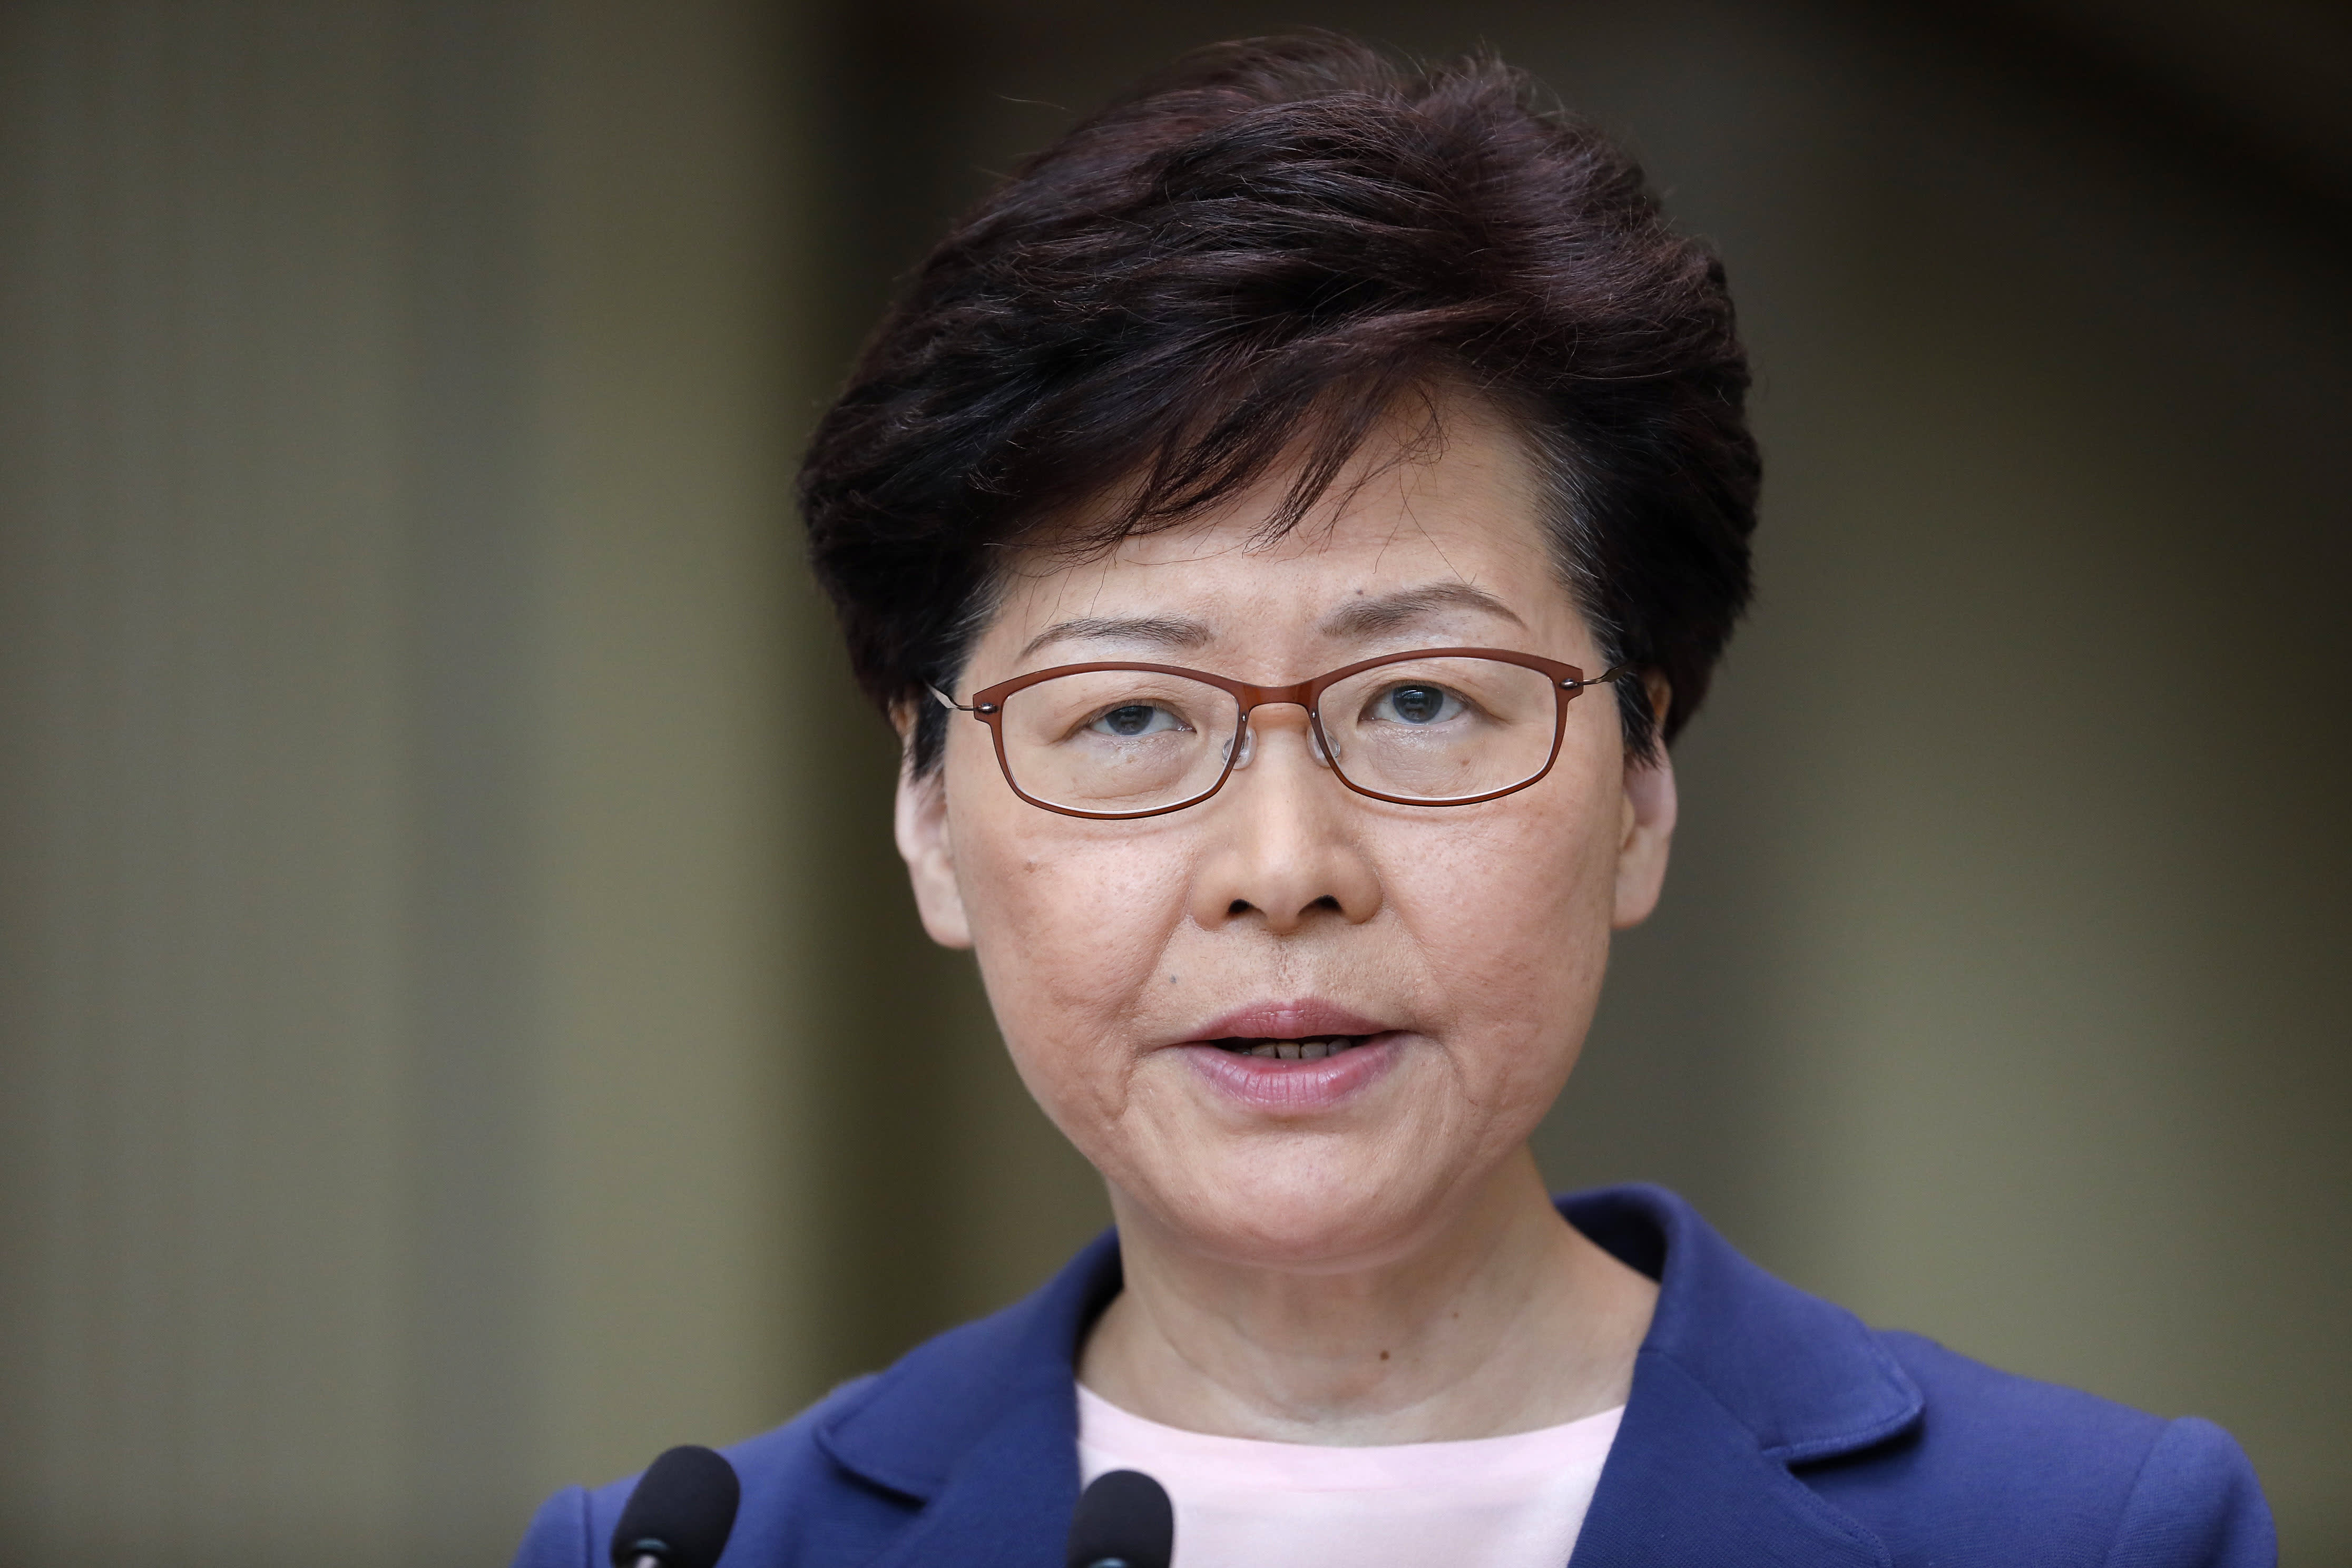 Hong Kong's leader says the city is verging on 'a very dangerous situation'